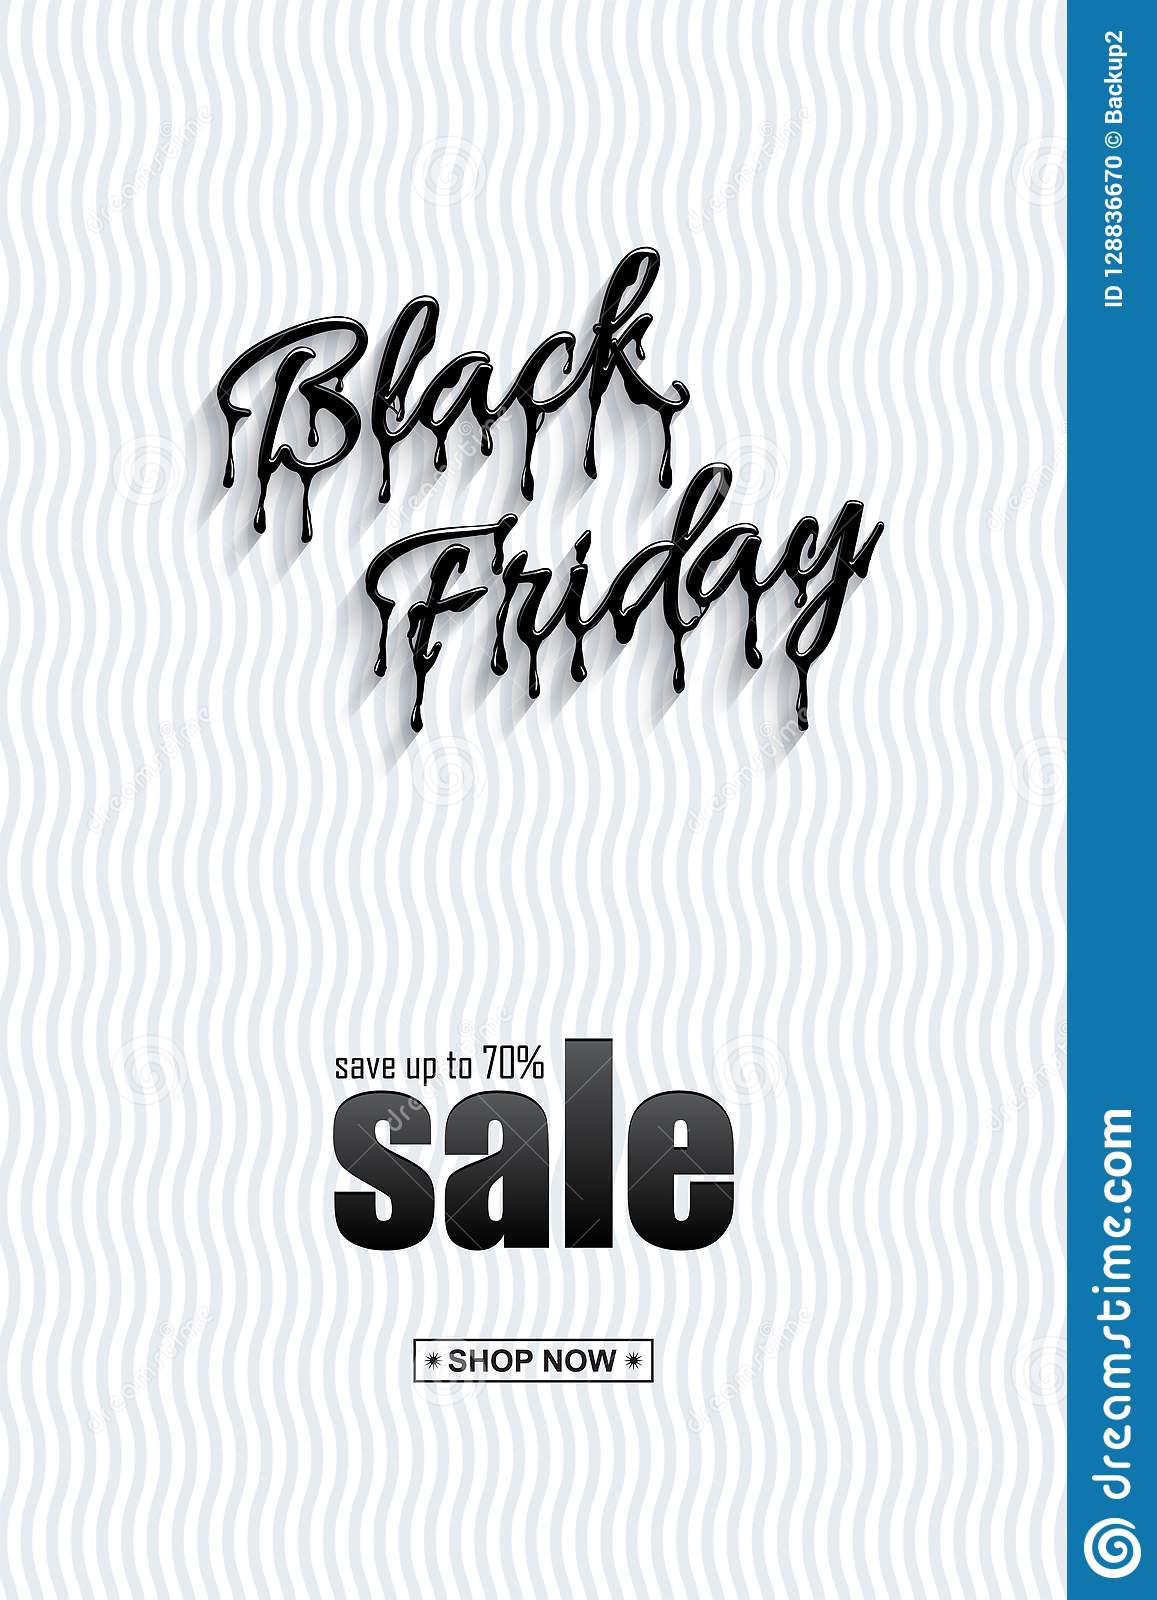 Black Friday Sale vertical design template. Realistic Black Friday 3d lettering with black liquid droplets